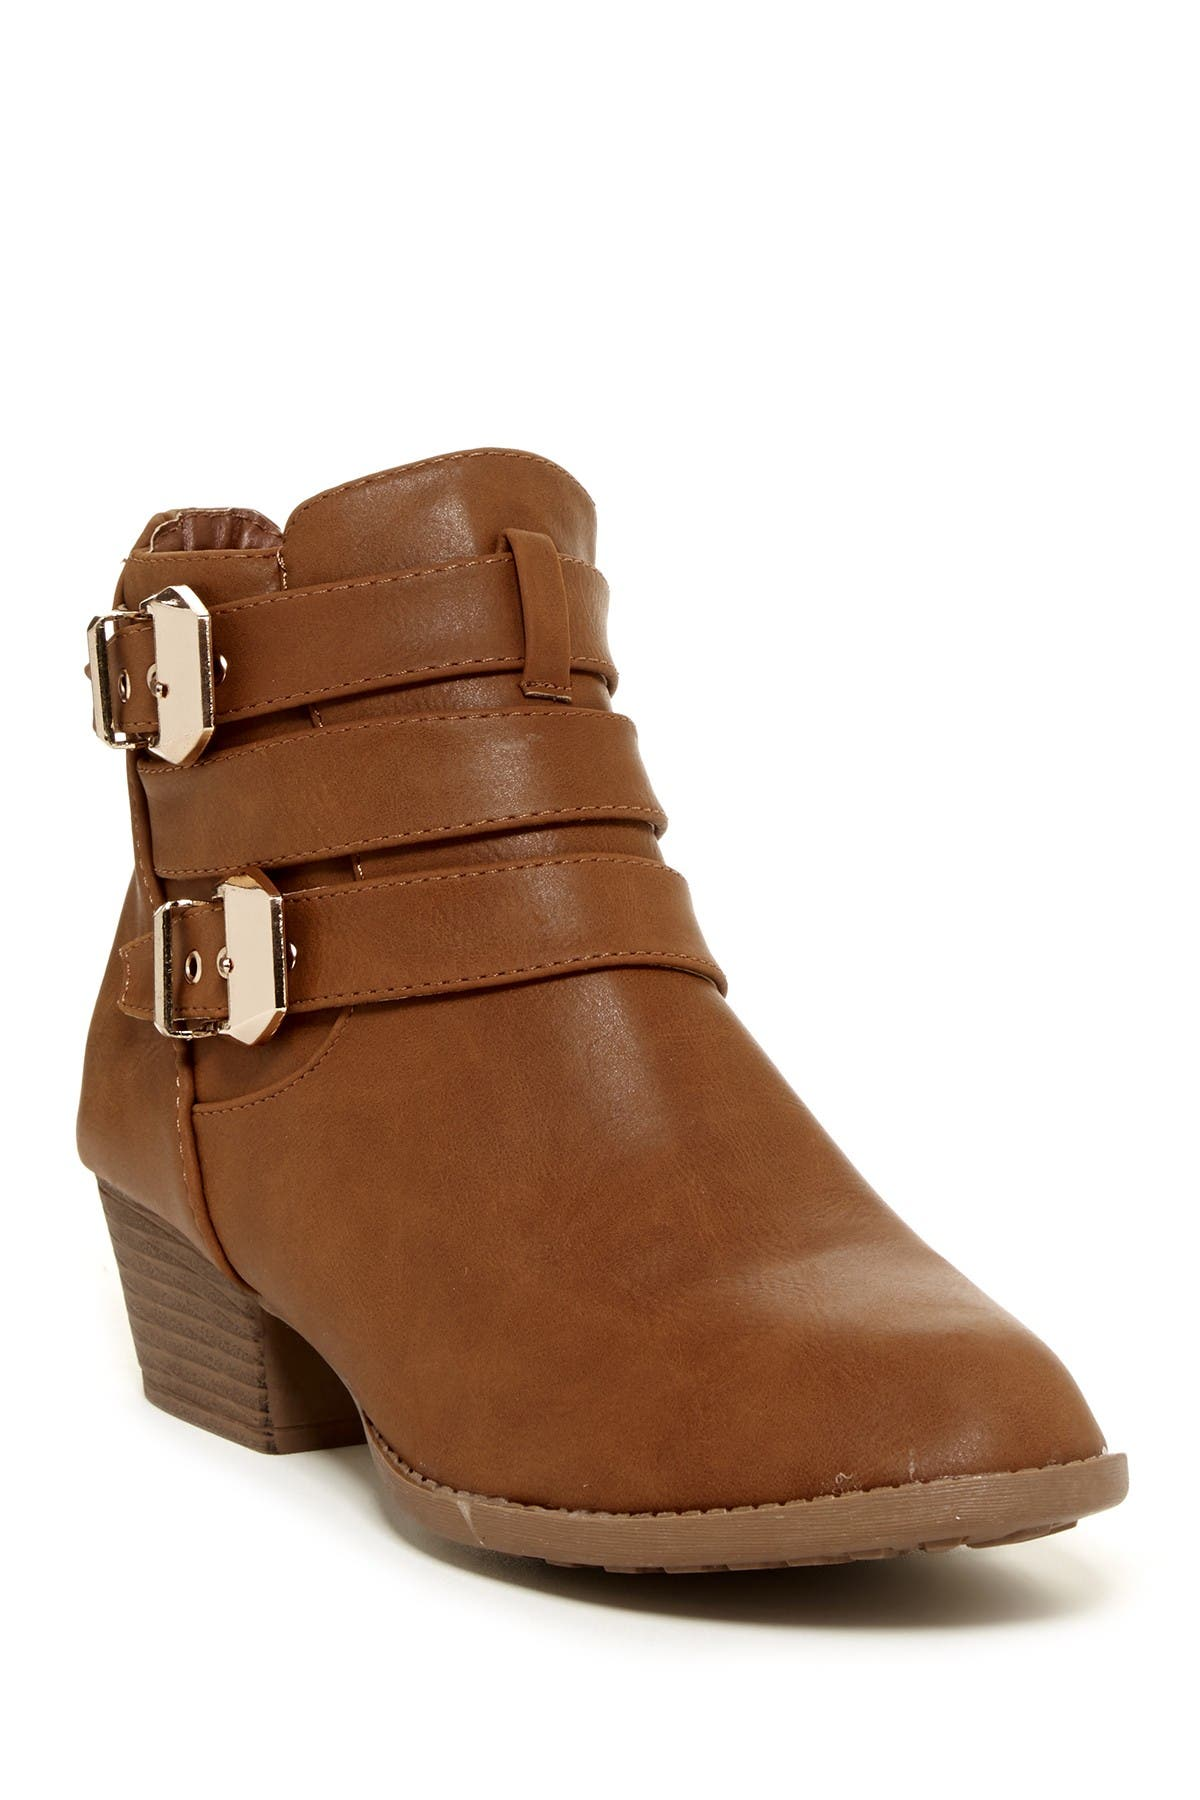 Image of Top Moda CL Buckle Bootie